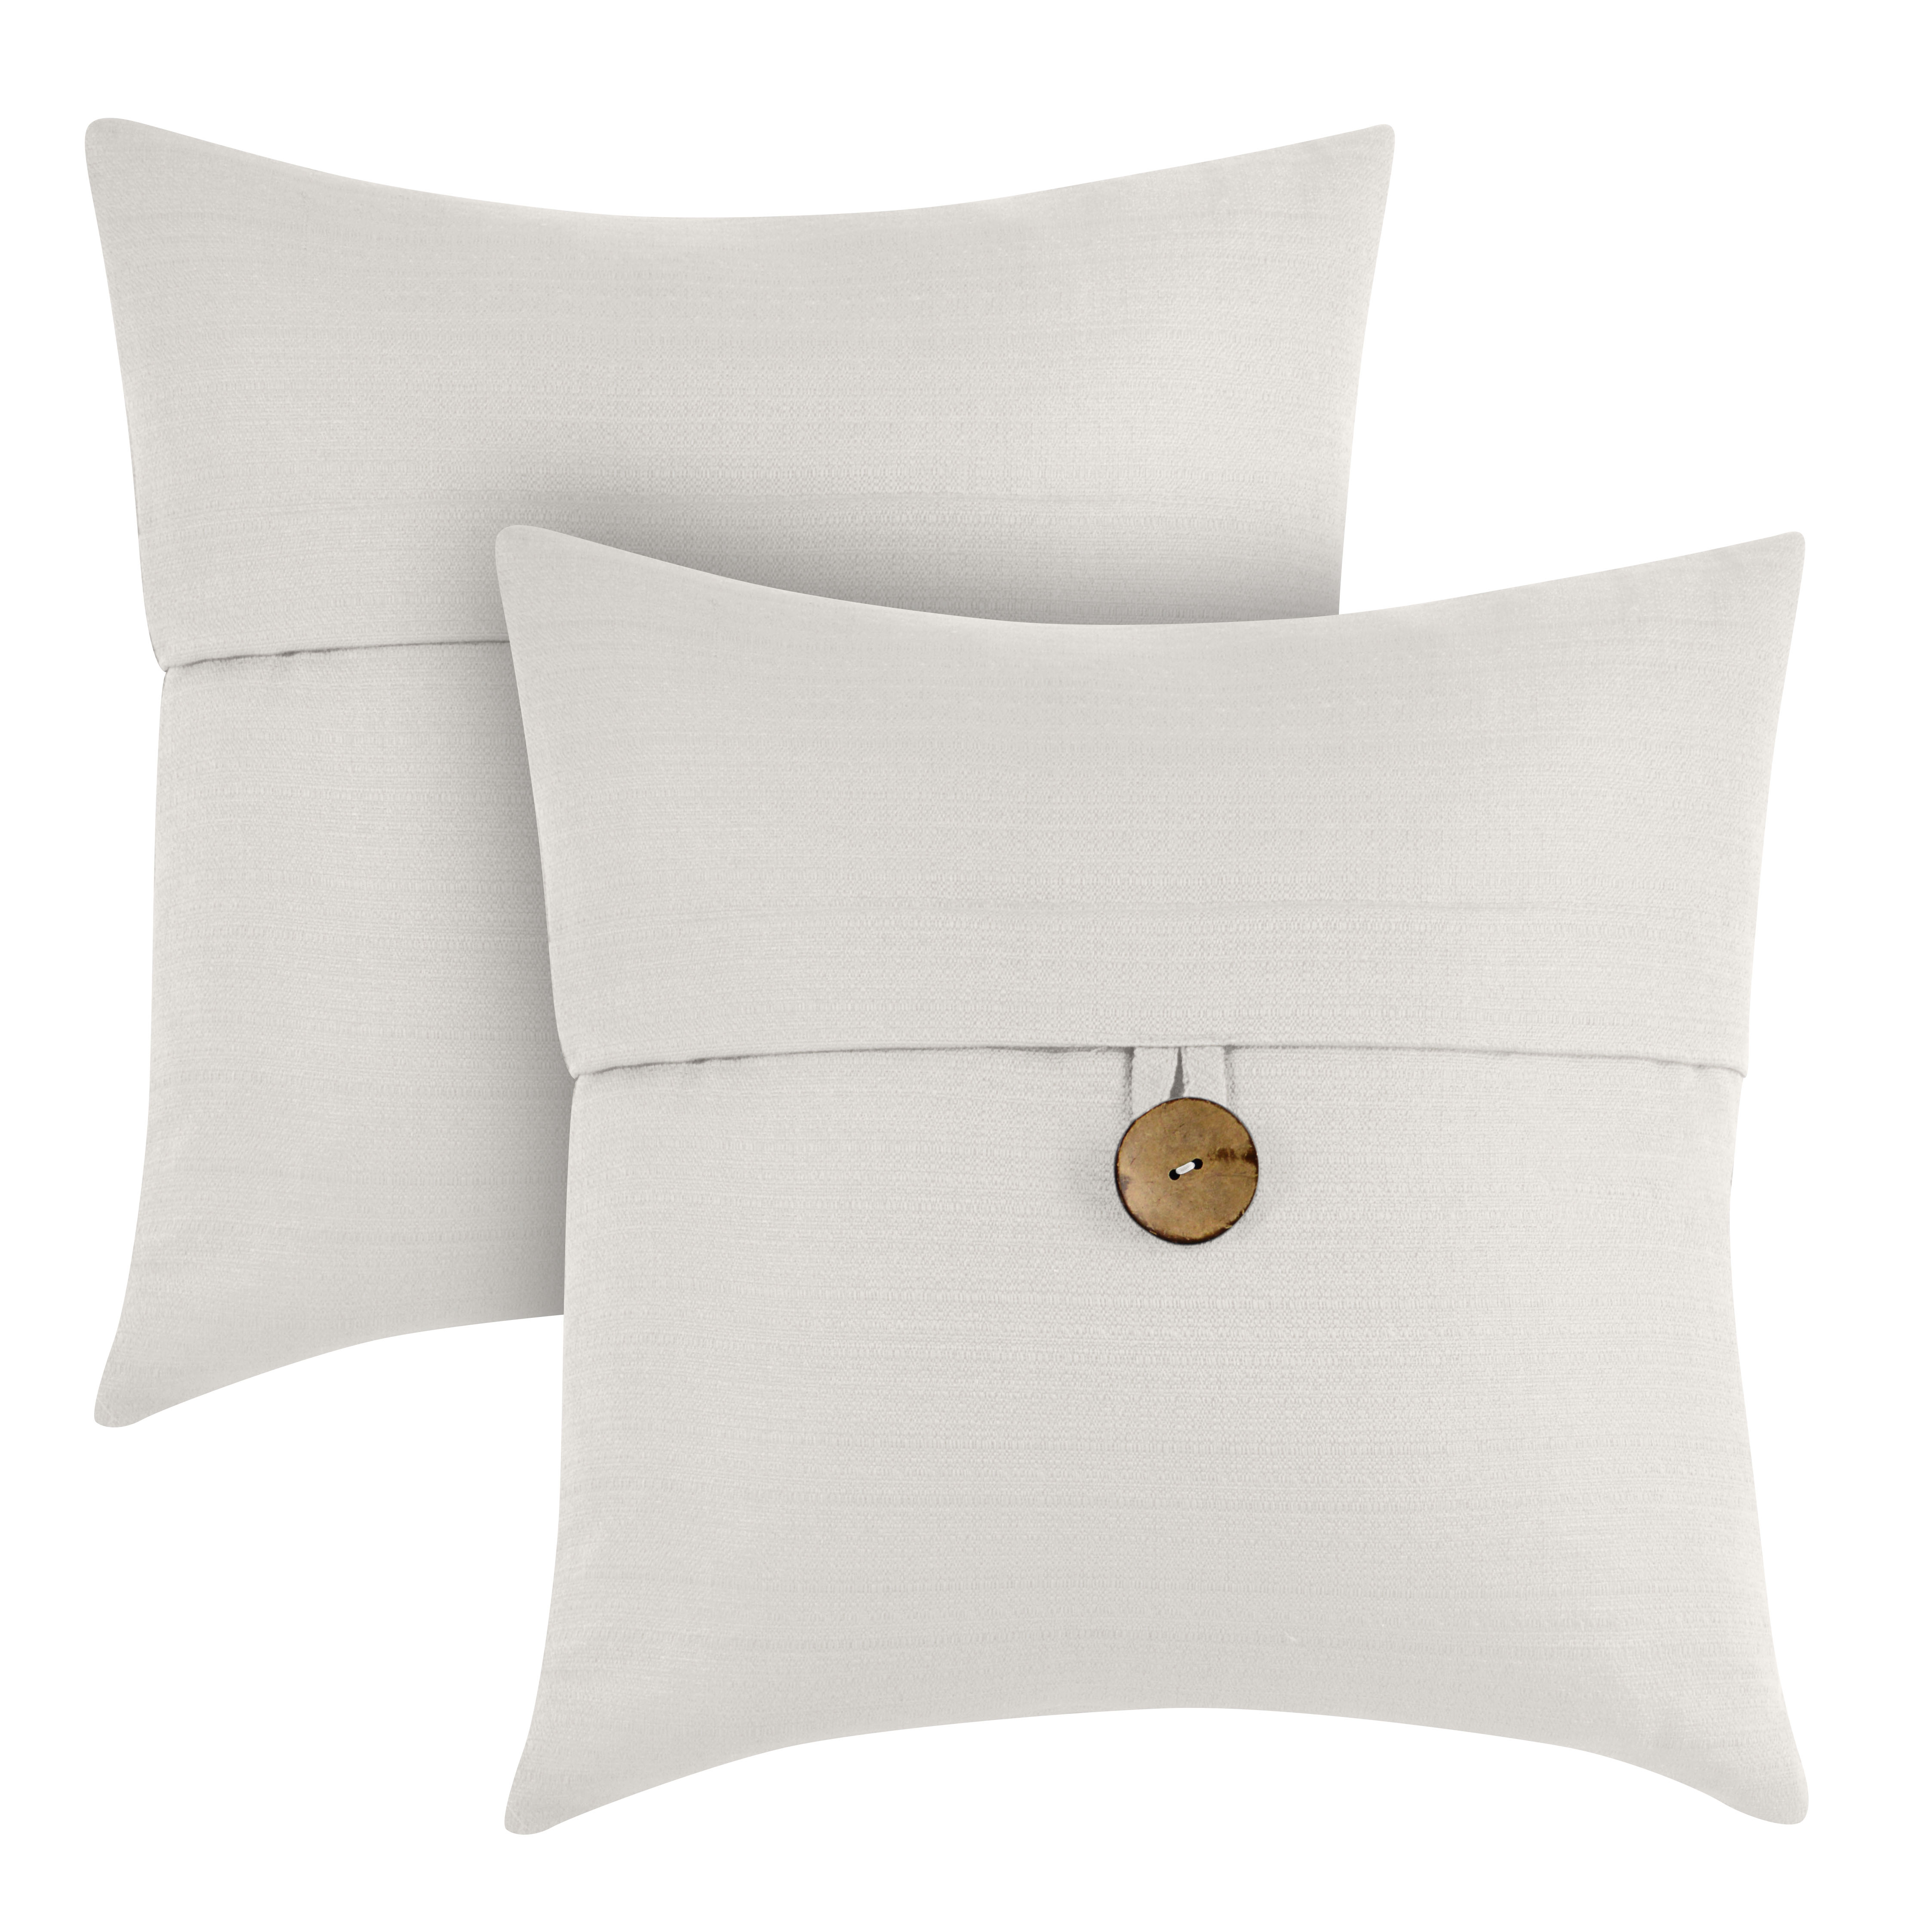 """Better Homes & Gardens Feather Filled Banded Button Decorative Throw Pillow, 20"""" x 20"""", White, 2 Pack"""